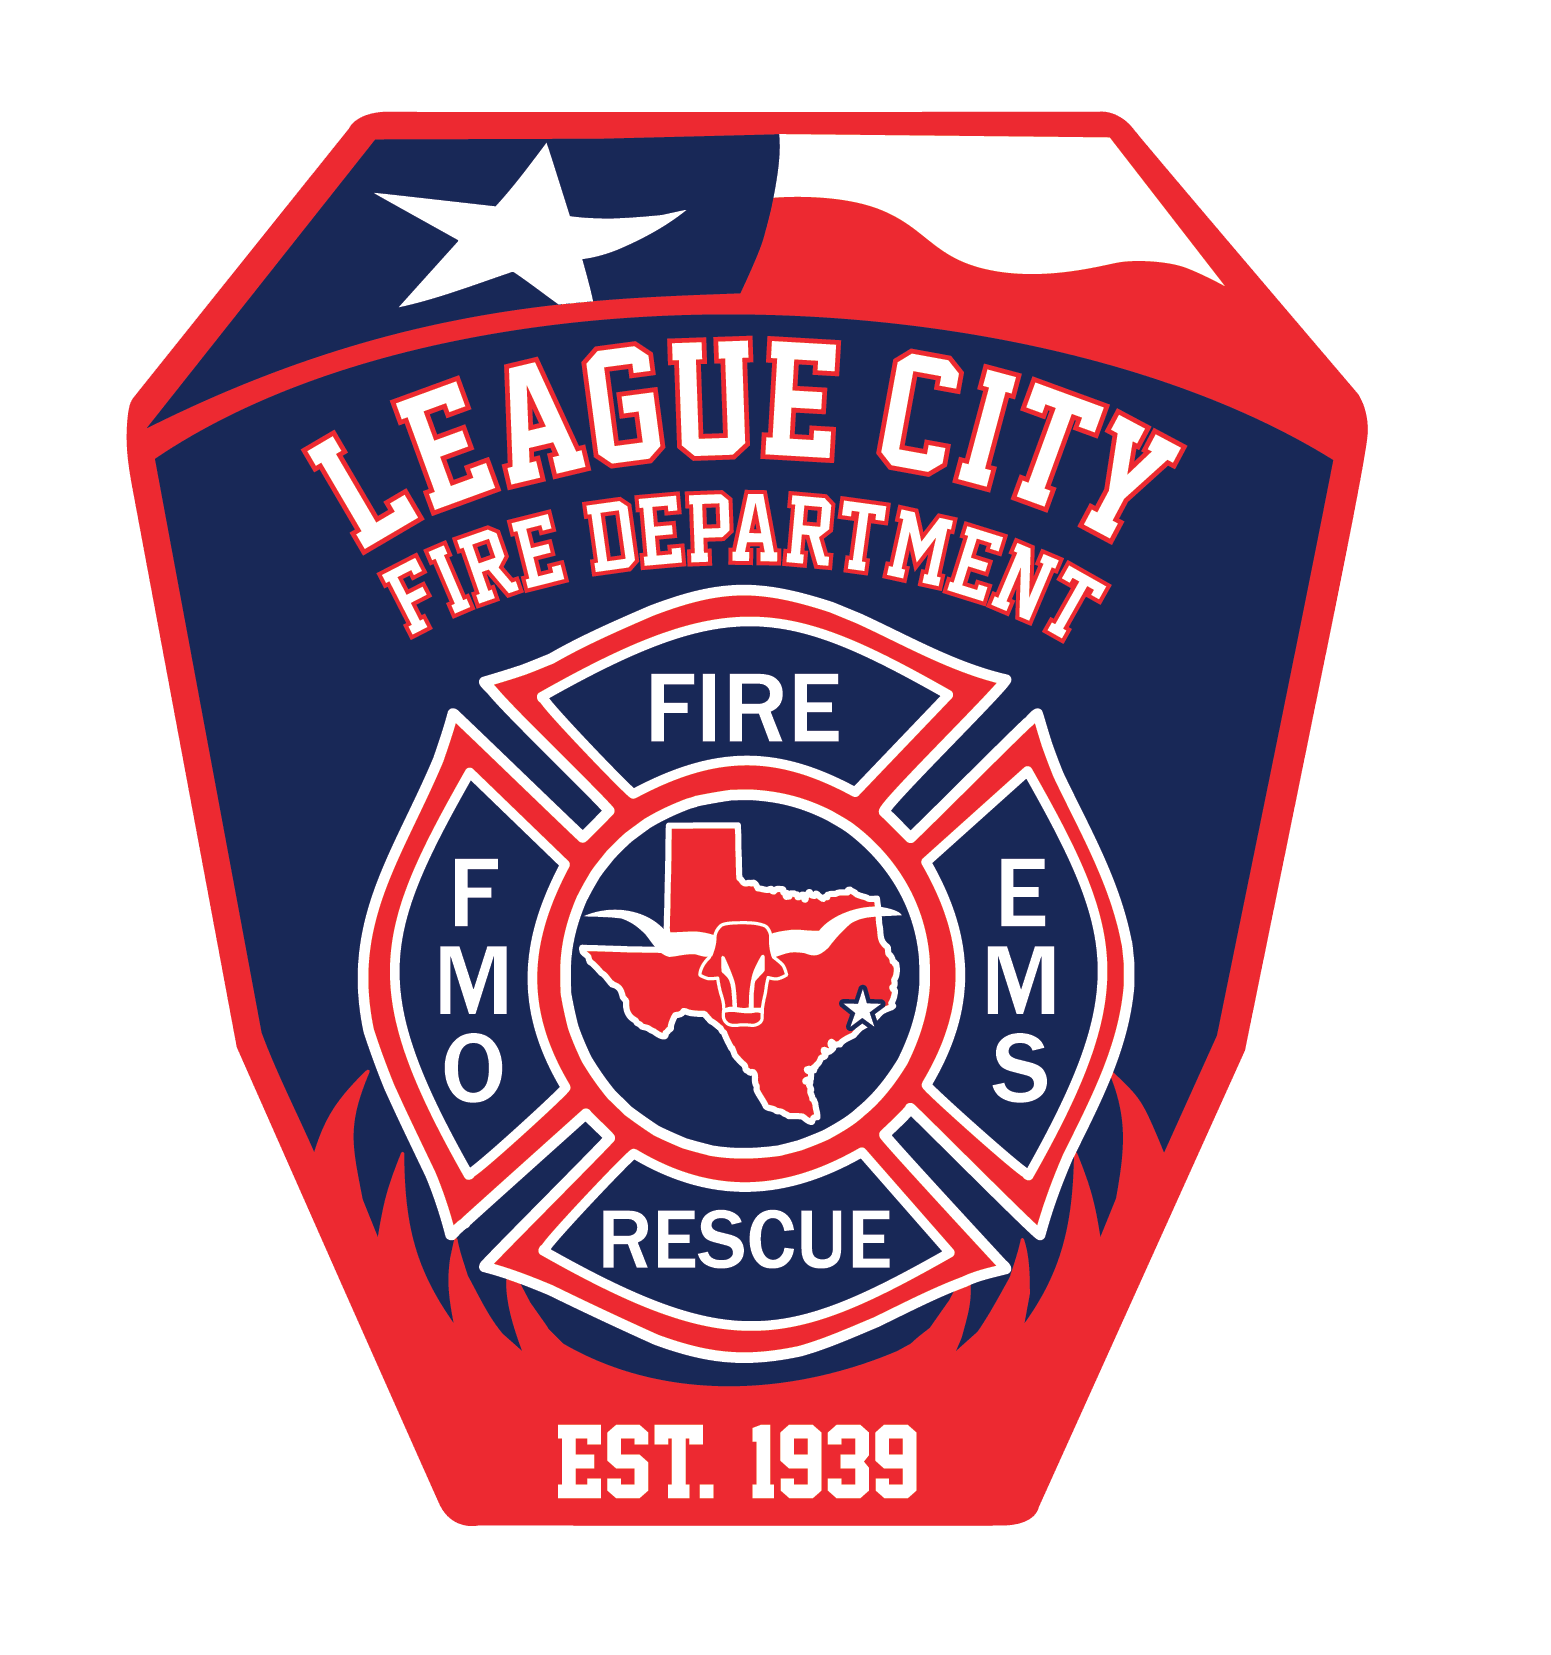 Emergency Medical Services Ems The League City